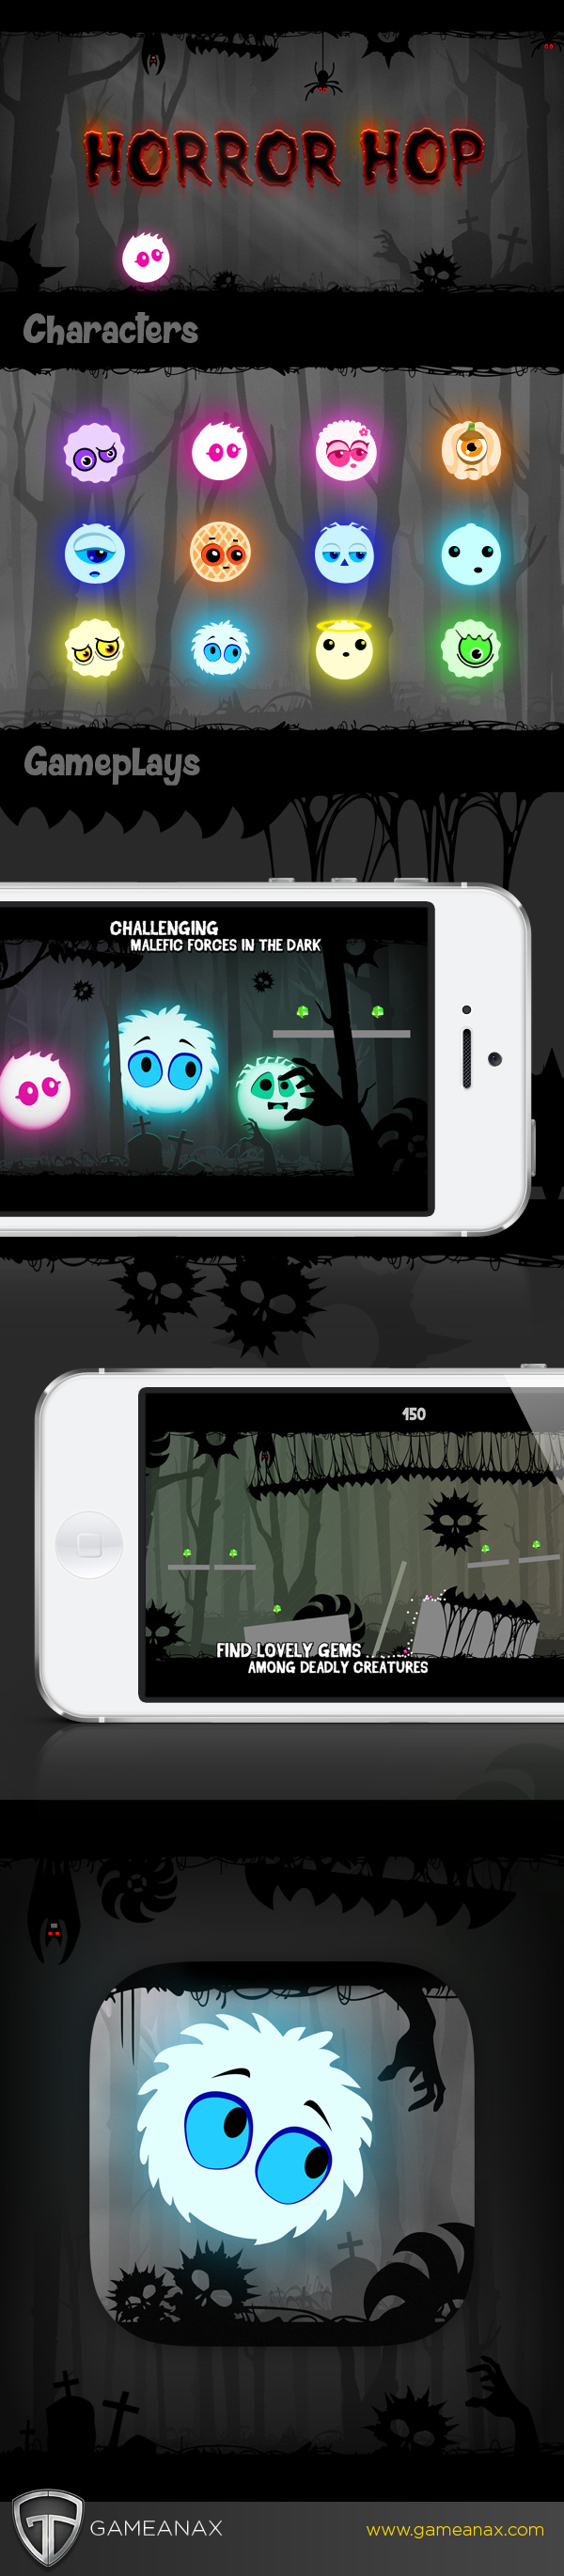 UI ux Games gamedesign ios android Character design  art background graphics